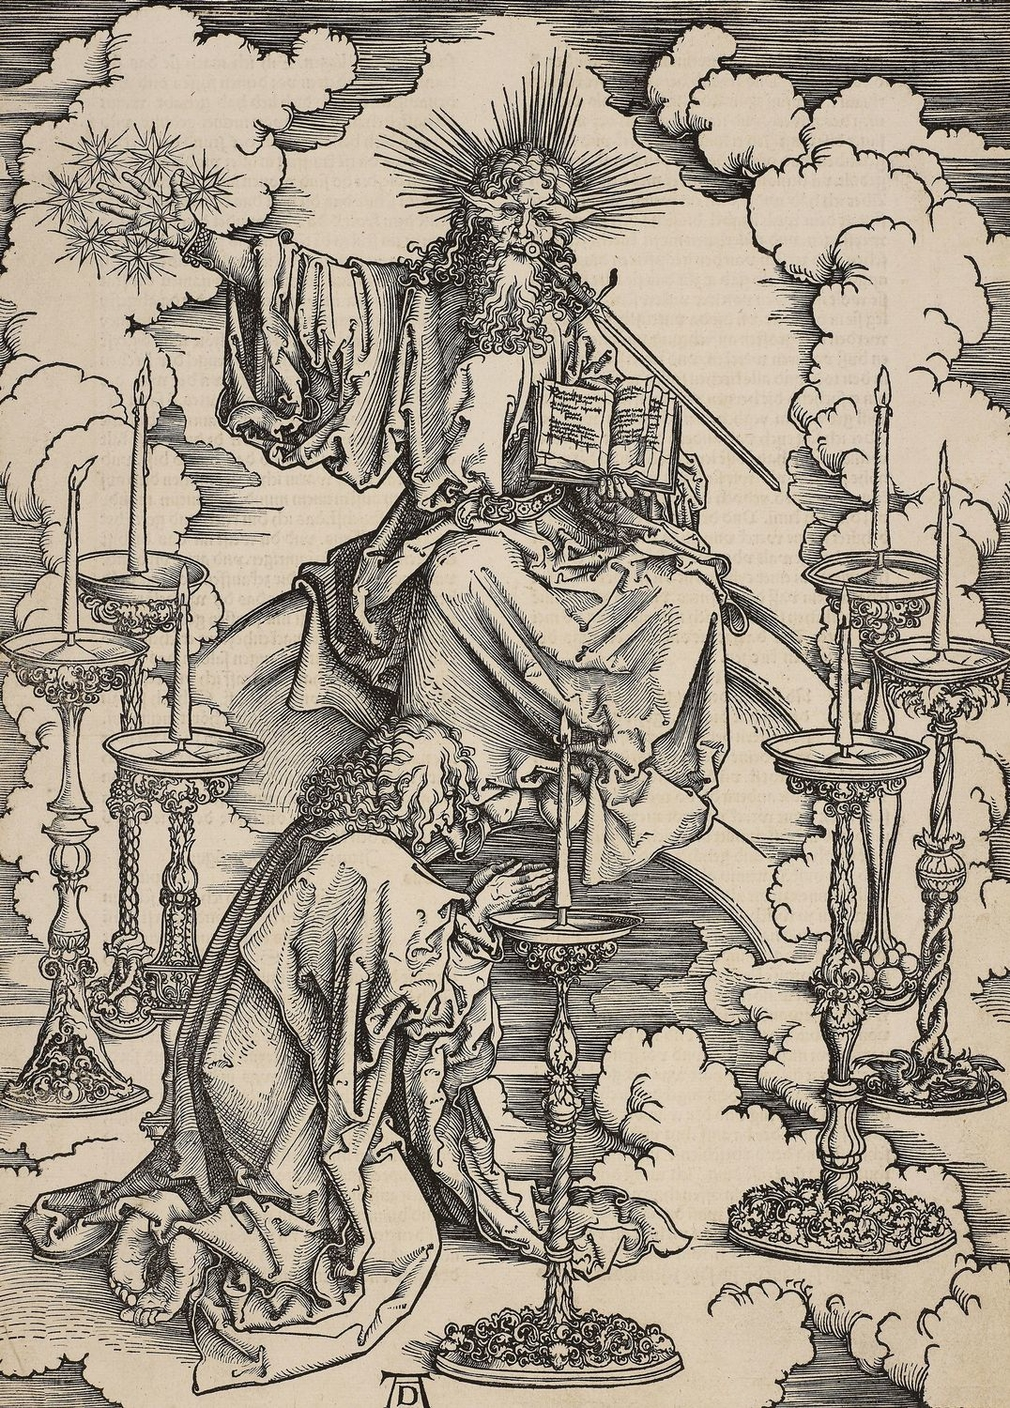 A woodcut from Dürer's 'Apocalypse' showing the Vision of the Seven Candlesticks.